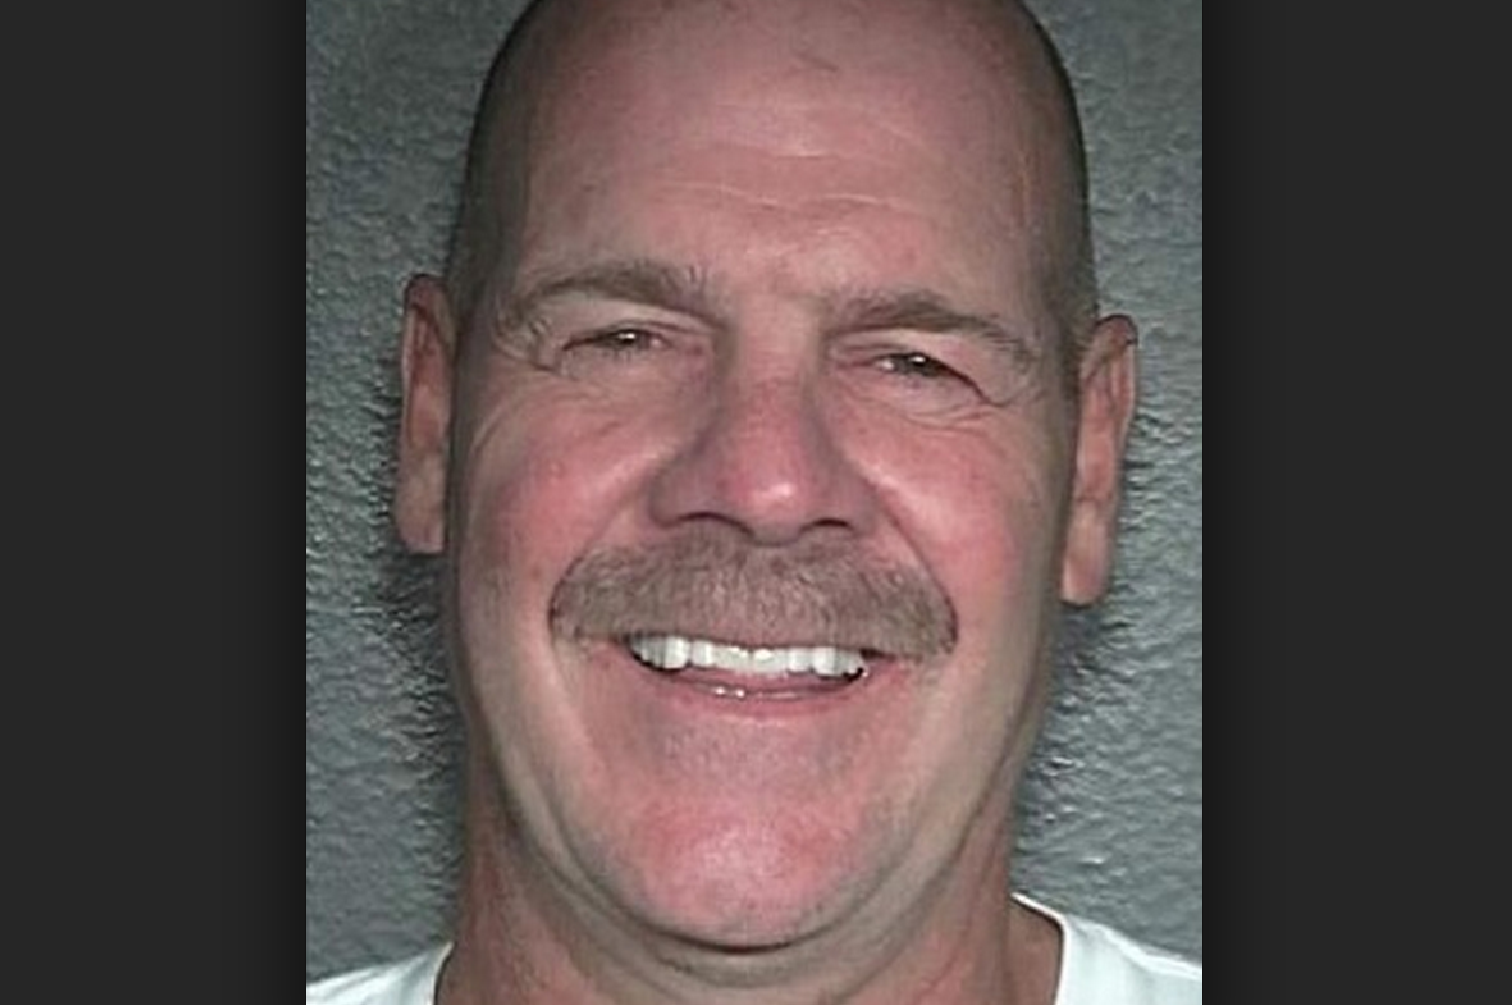 Rockies Owner Charlie Monfort's DUI Didn't Ruin an Extremely Happy